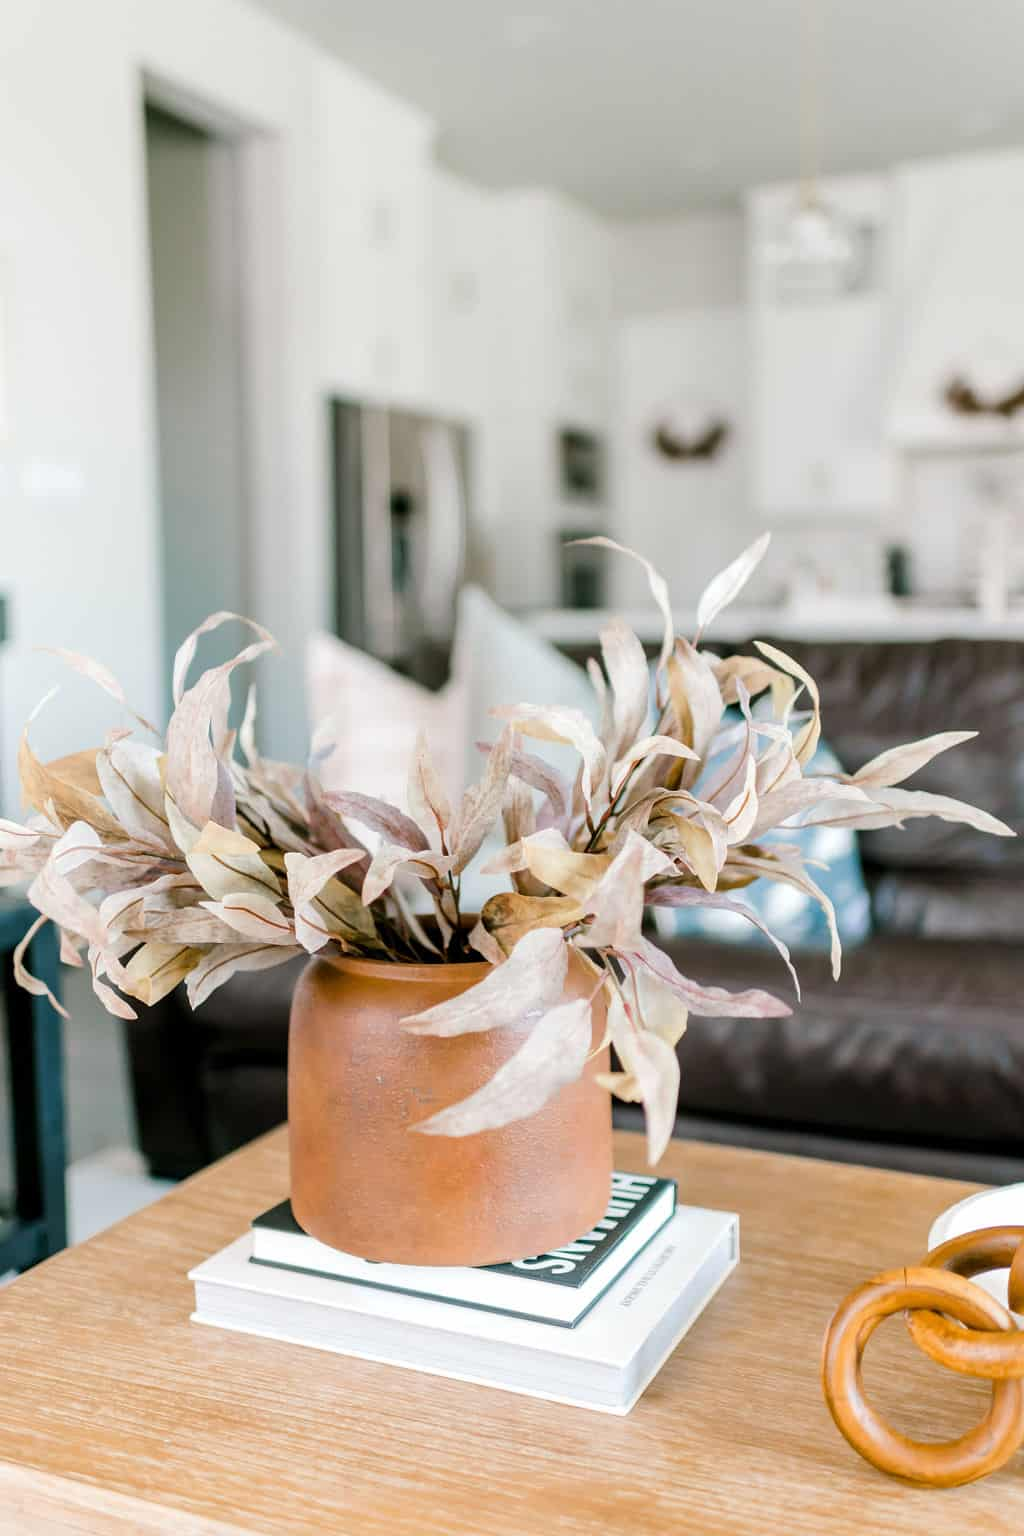 Stems in vase on table